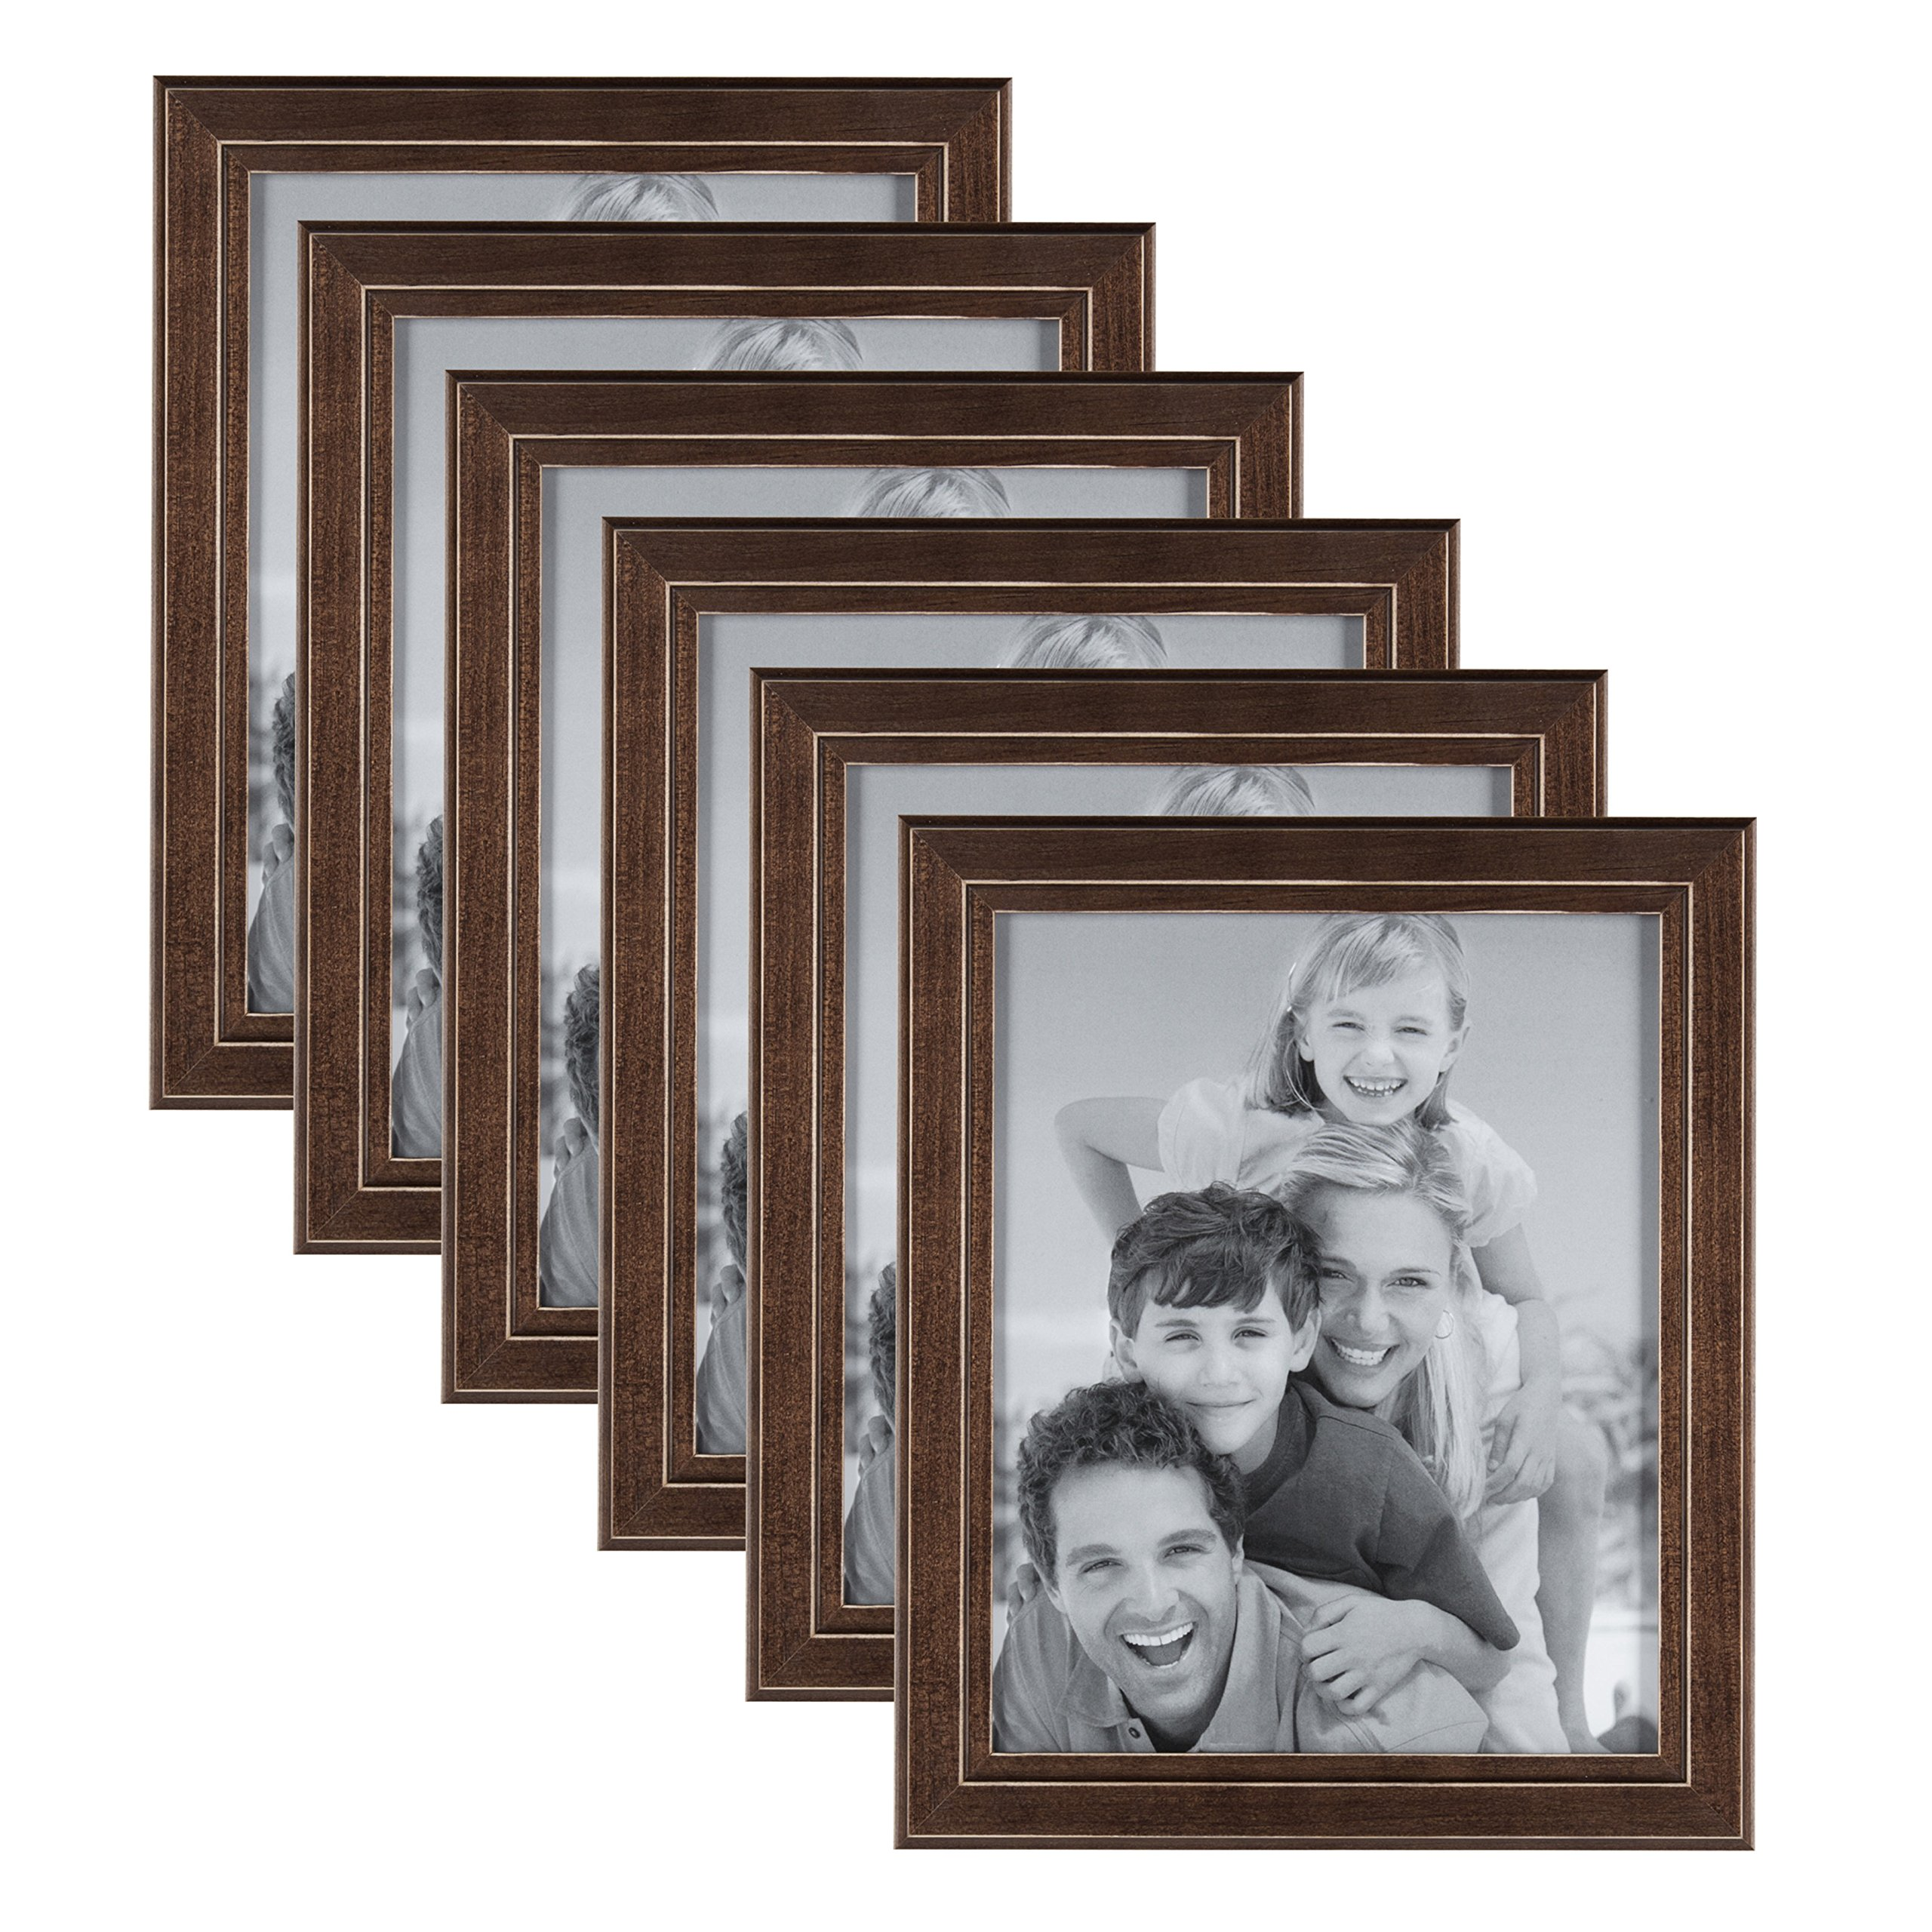 DesignOvation Kieva Solid Wood Picture Frames, Distressed Espresso Brown 8x10, Pack of 6 by DesignOvation